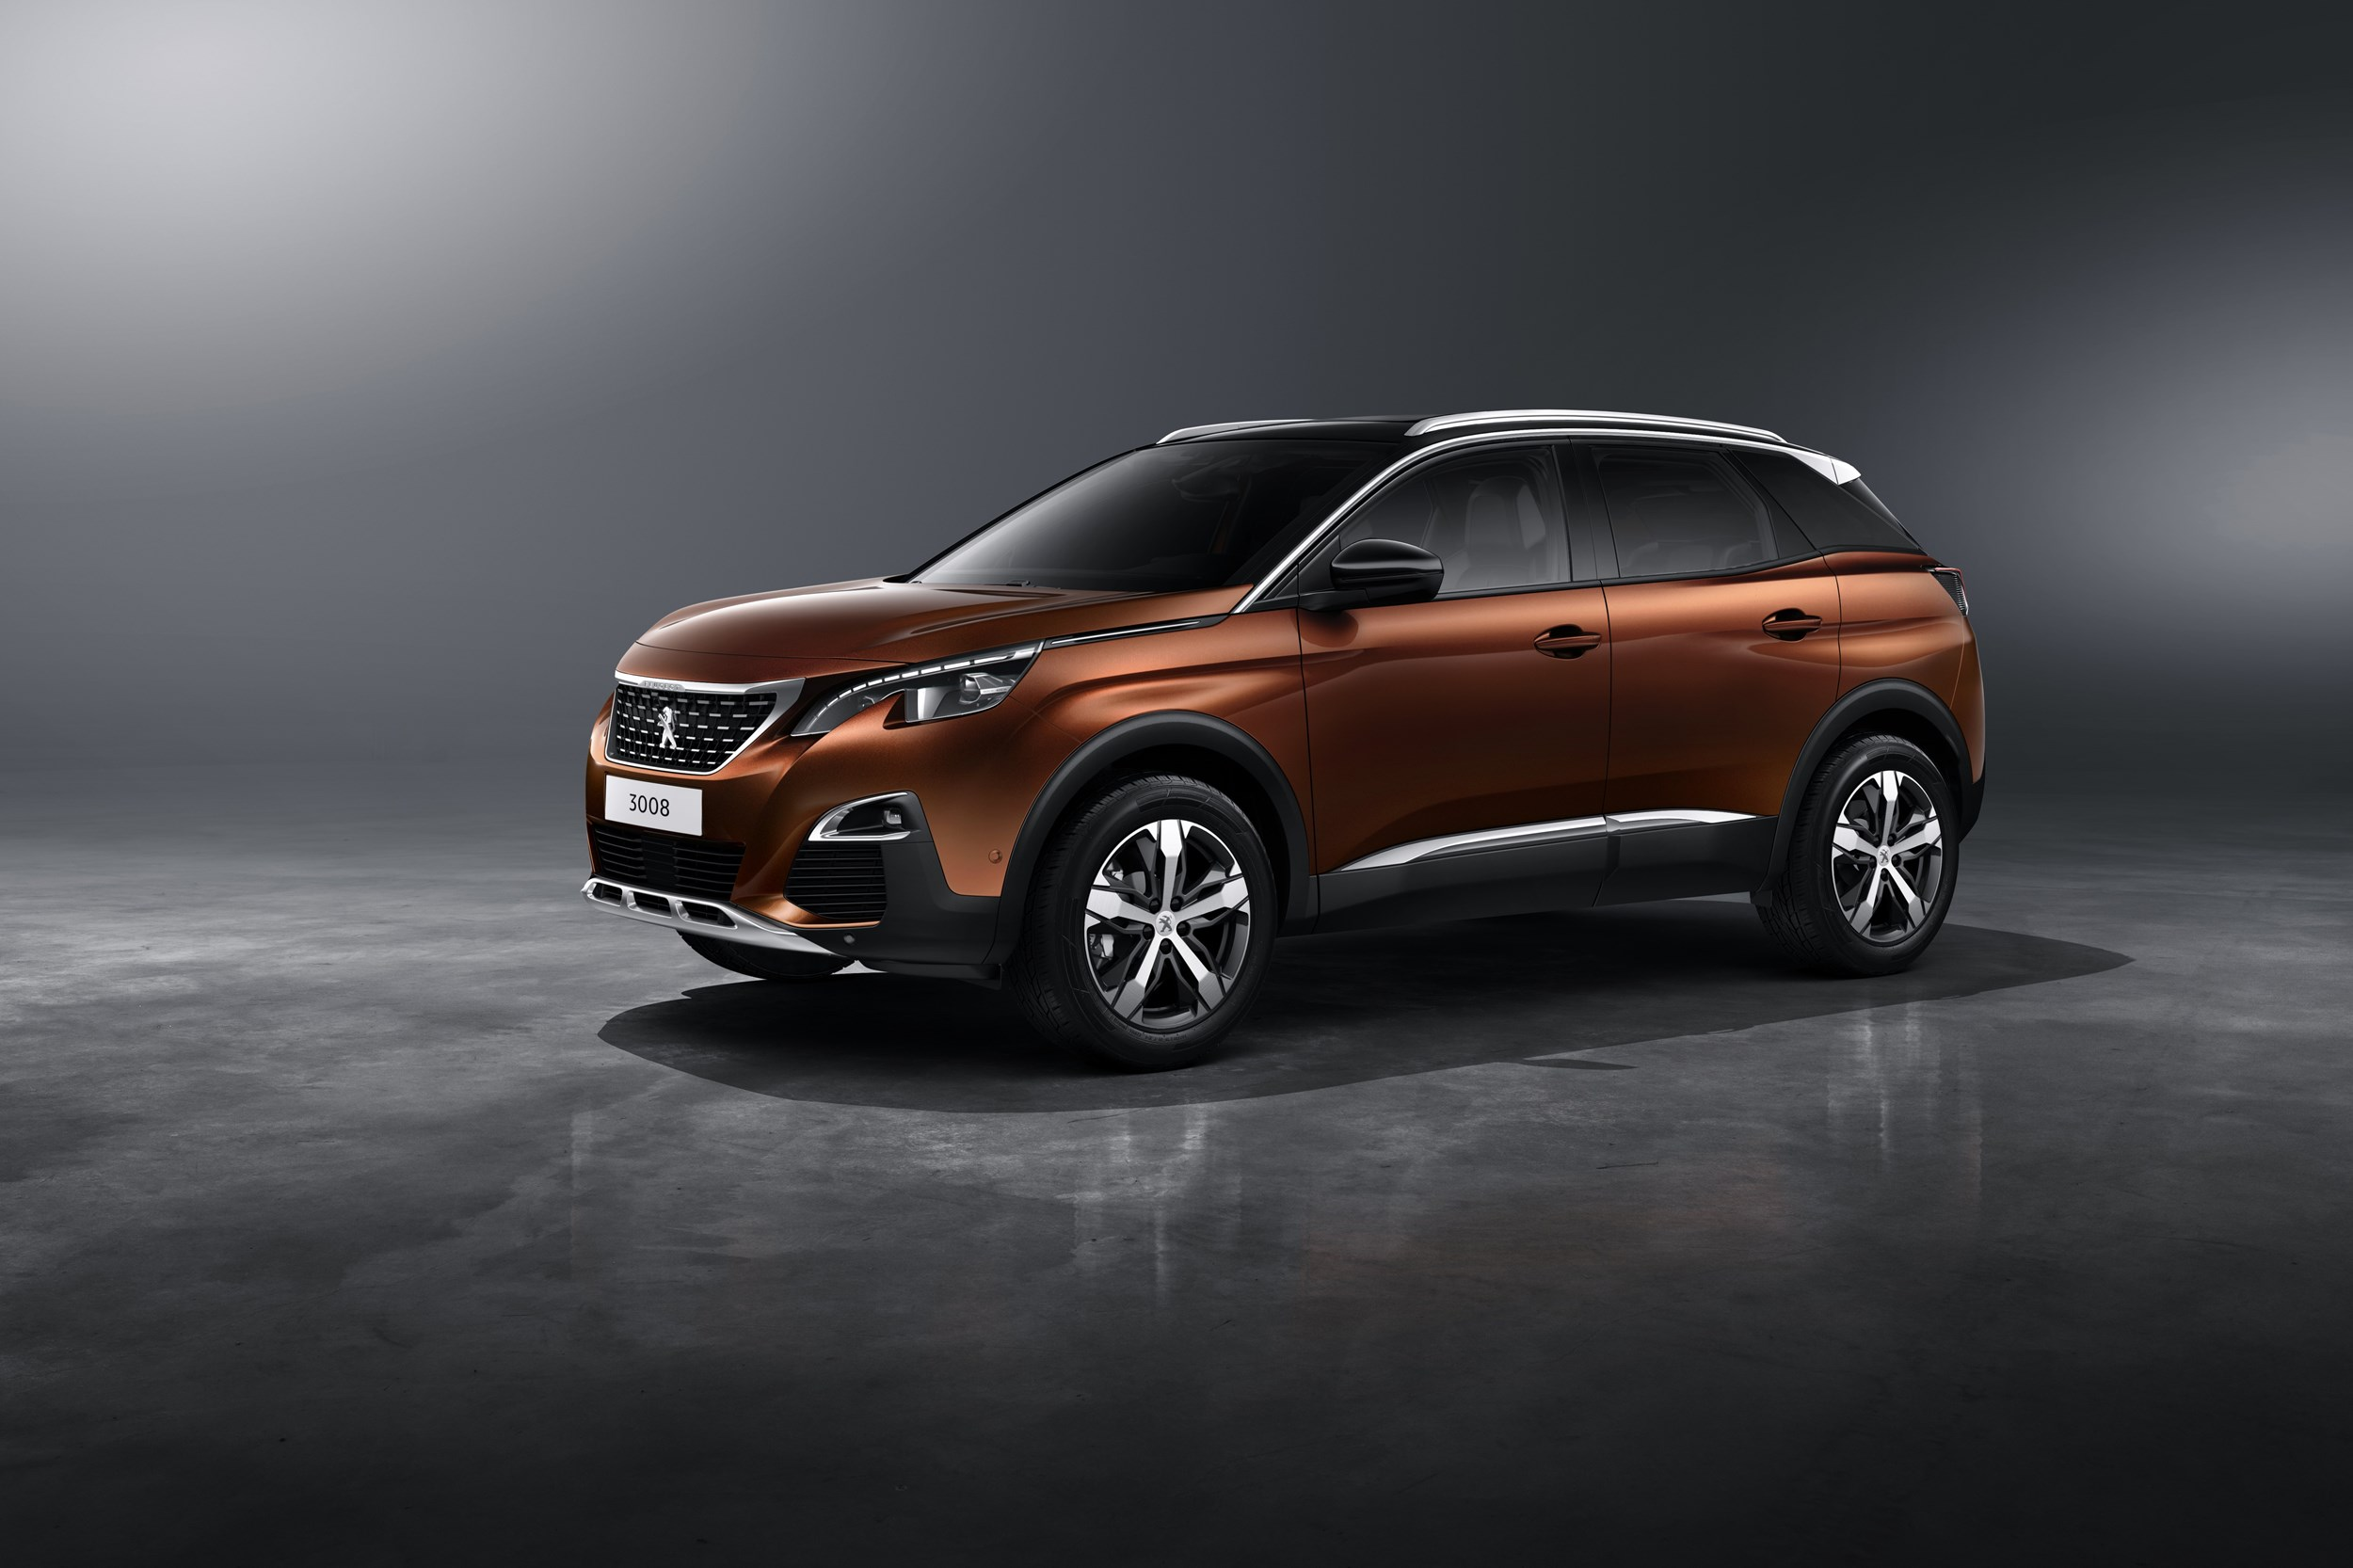 First Drive Peugeot 3008 20 Bluehdi Gt Auto Company Car Review Business Industrial Electrical Test Equipment Motors Advertisement